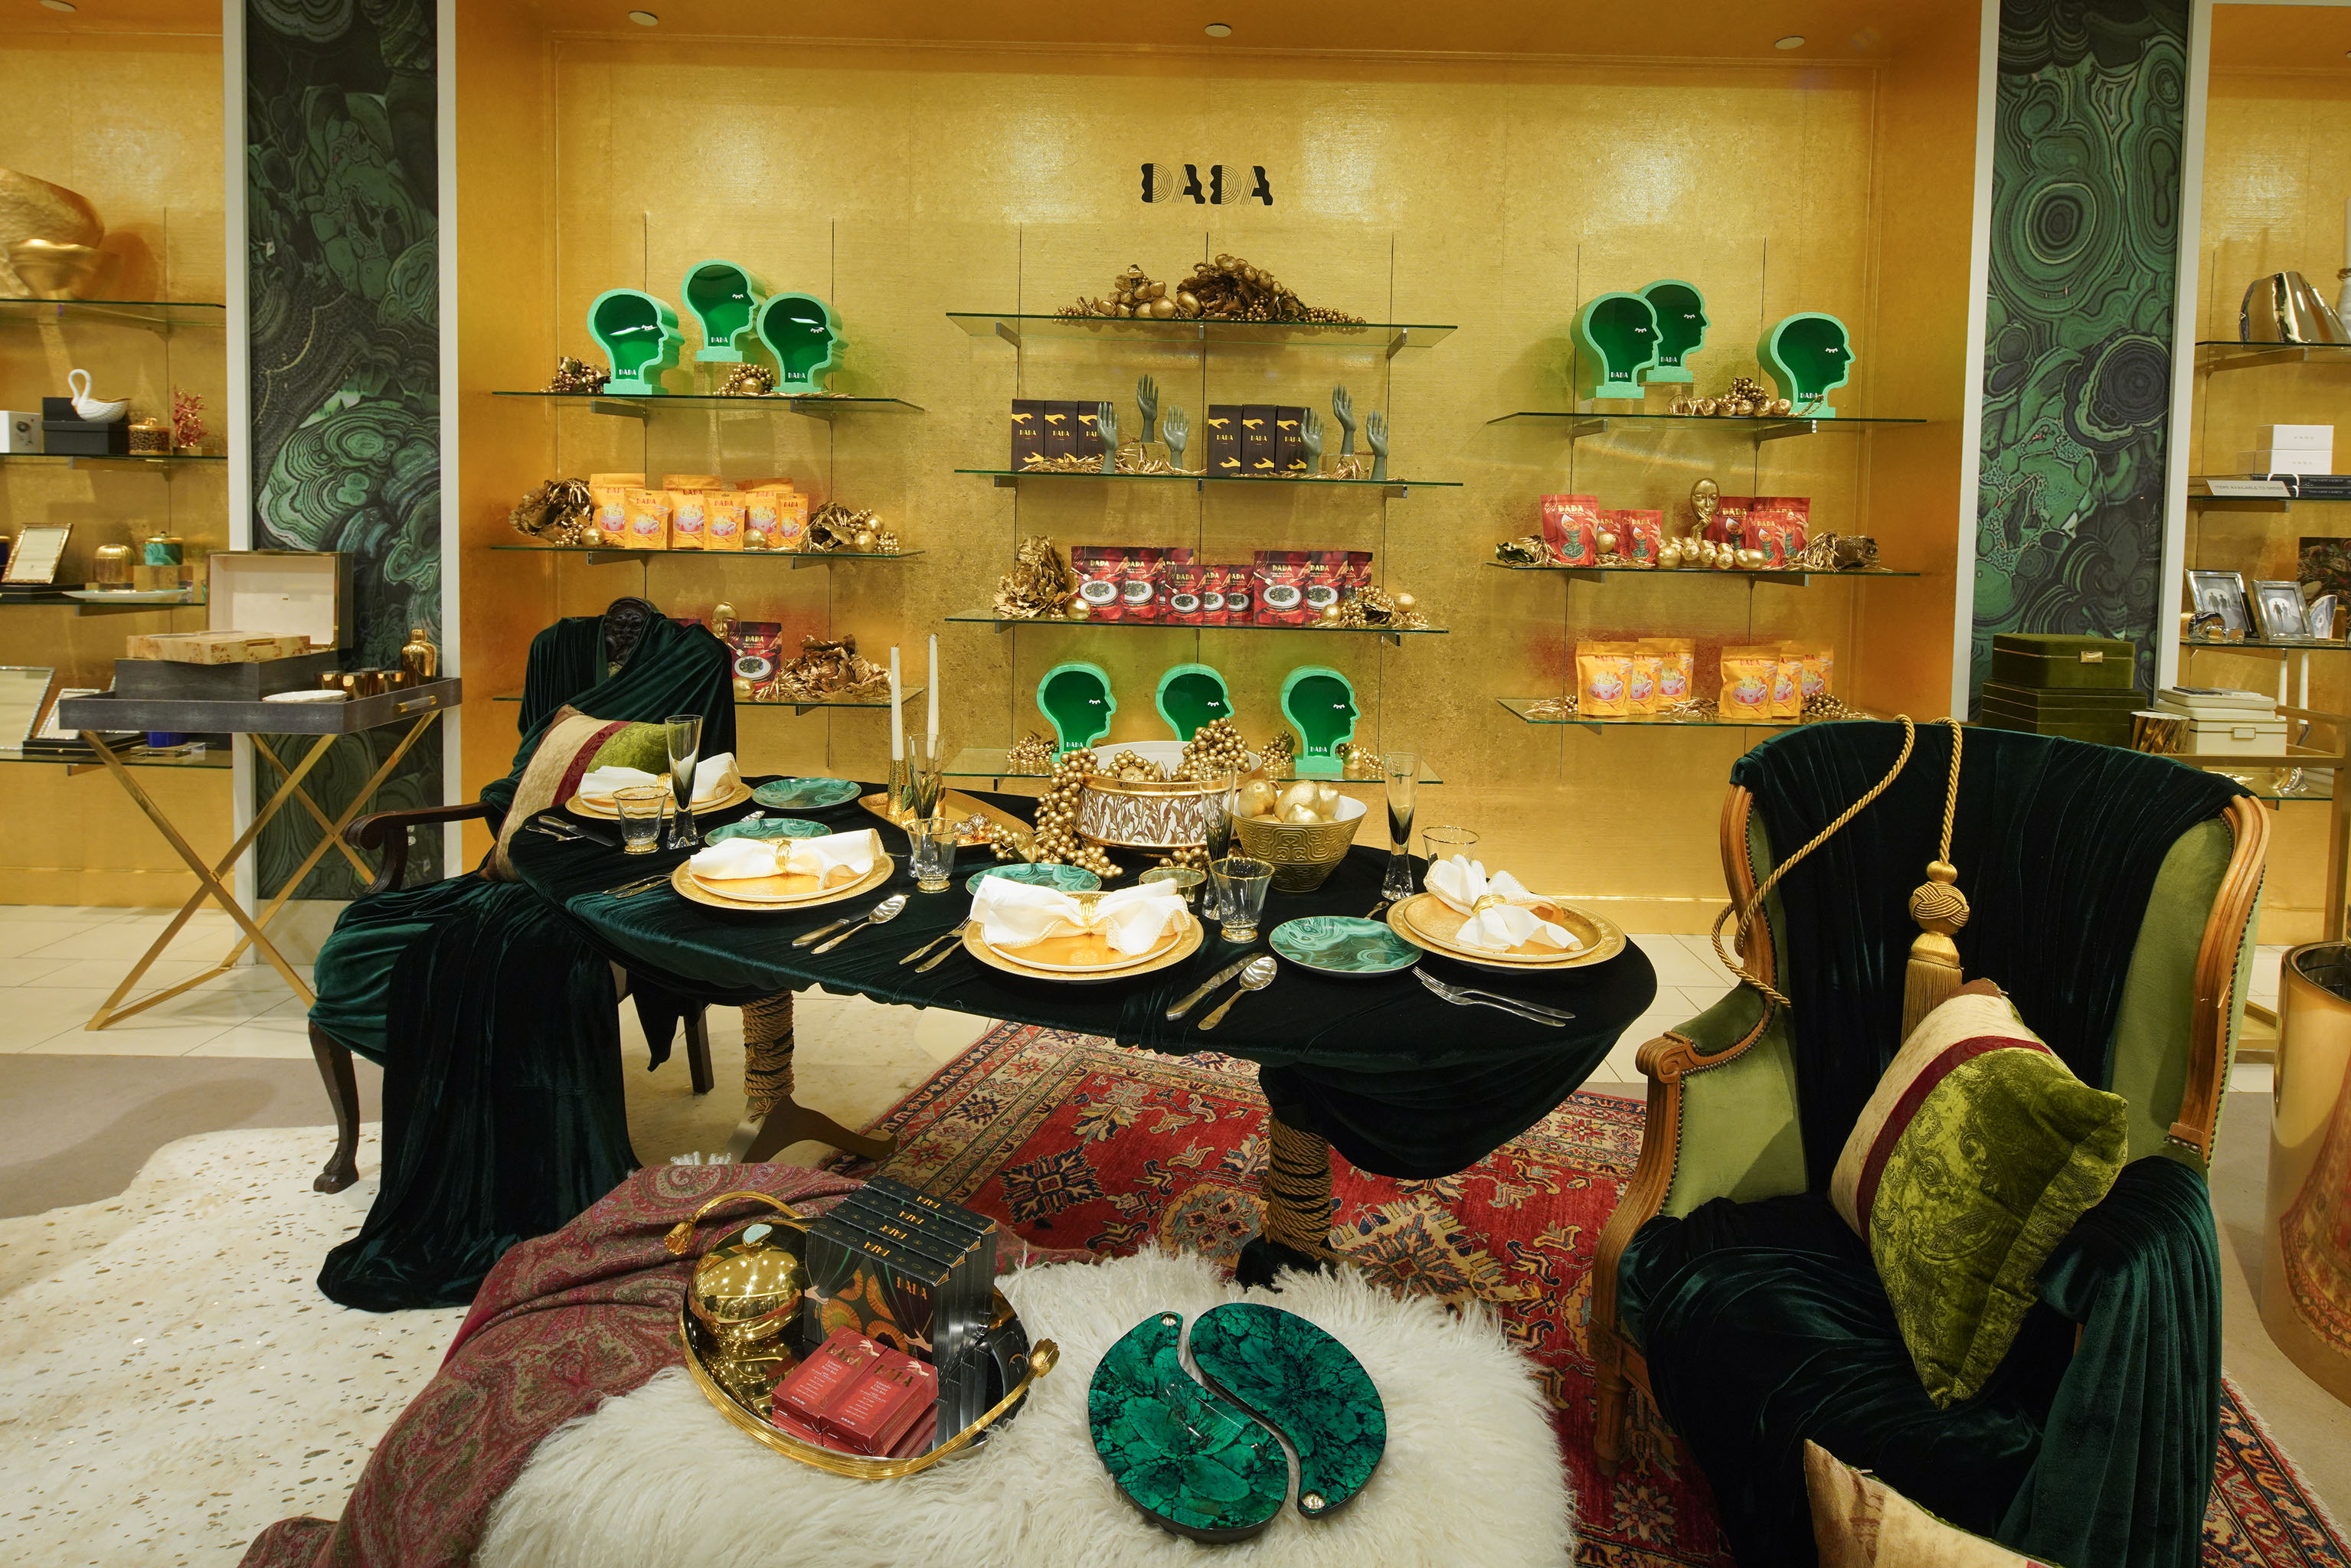 The Dada Daily pop-up at the Saks Fifth Avenue Manhattan flagship.